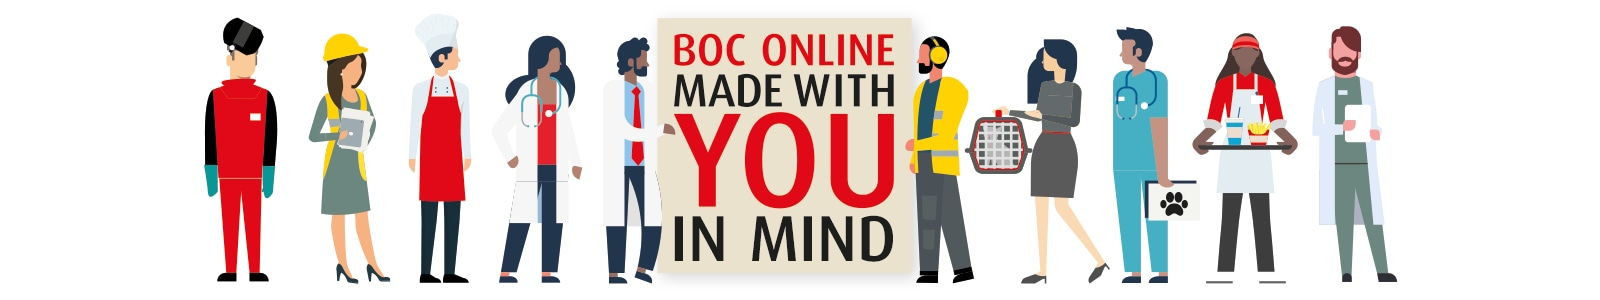 BOC Online made with you in mind